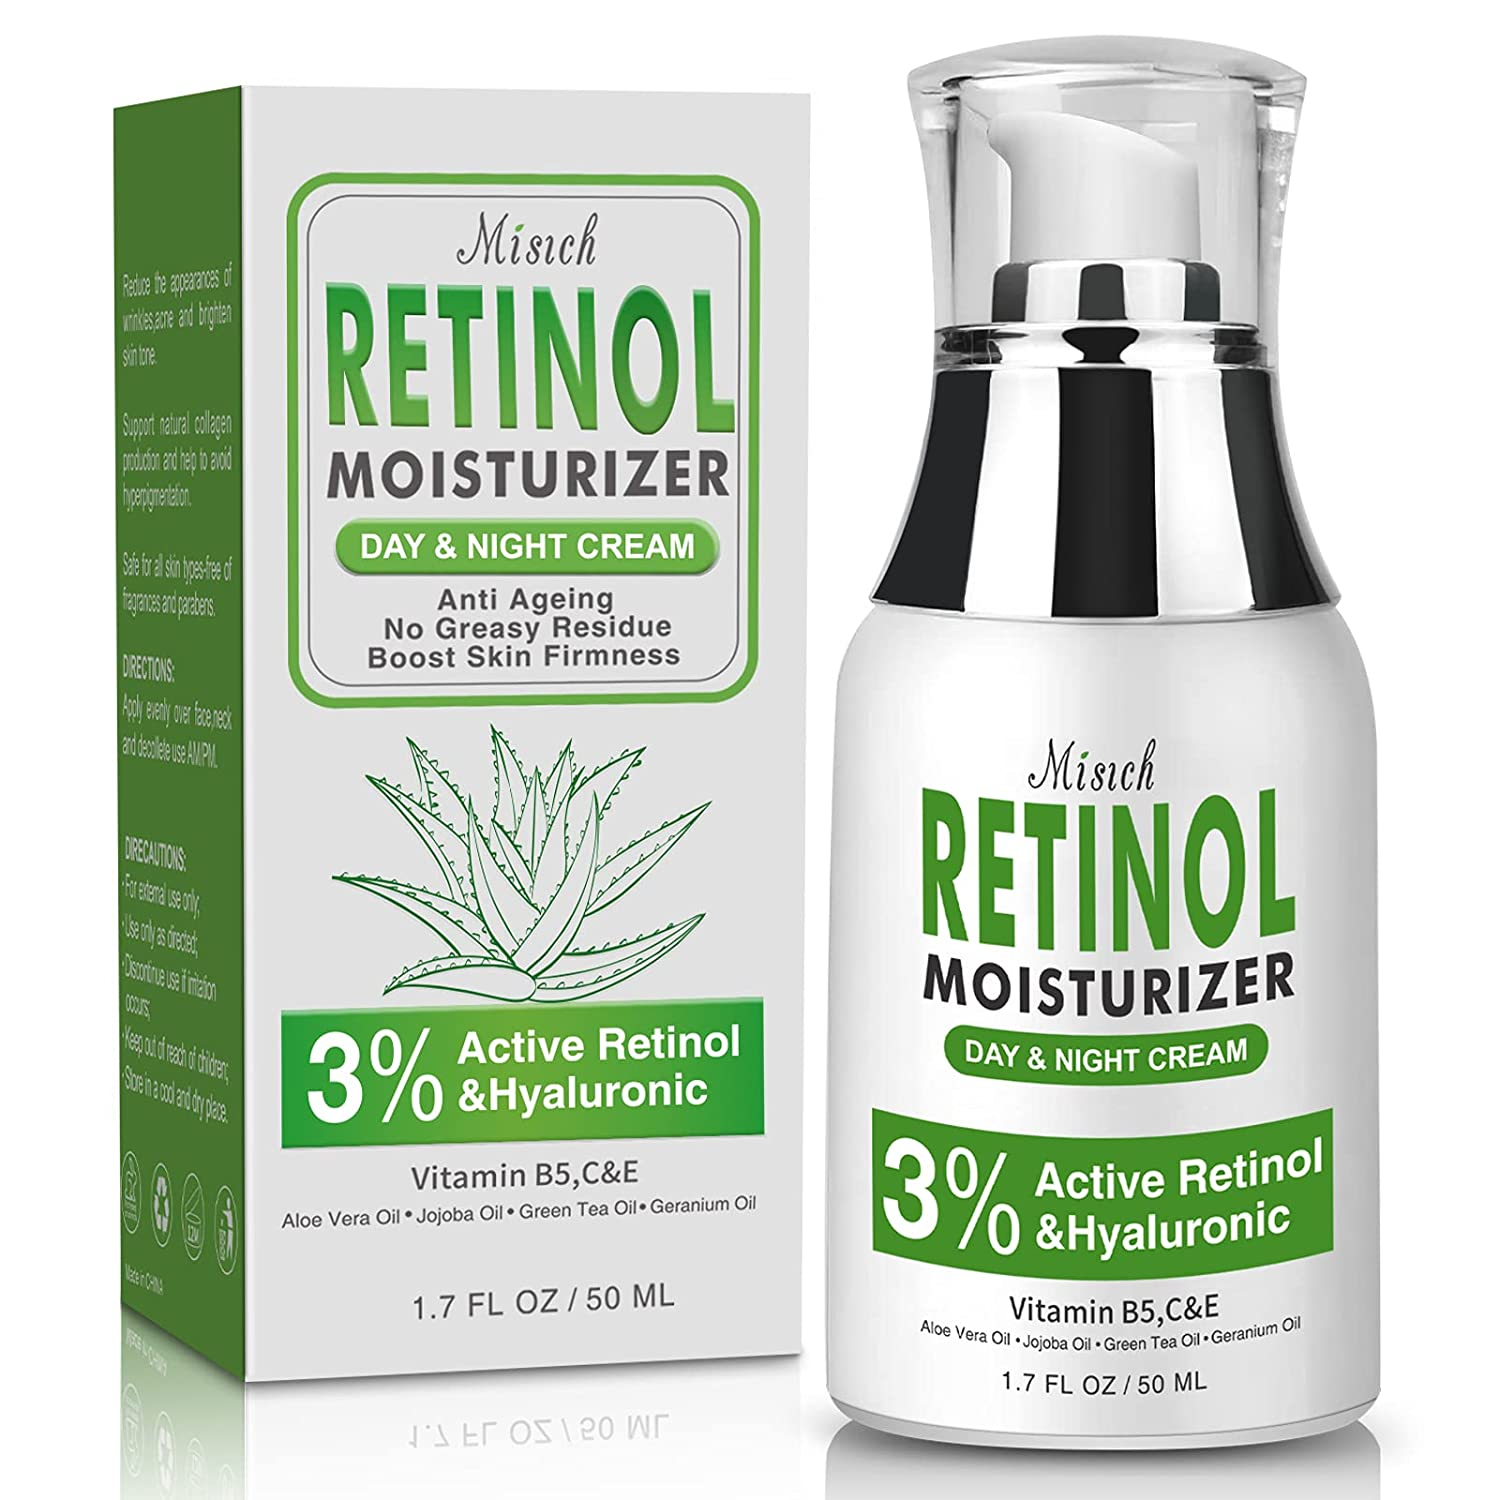 Anti 5% OFF Aging Retinol Jacksonville Mall Cream for Face Acid and N Day with Hyaluronic